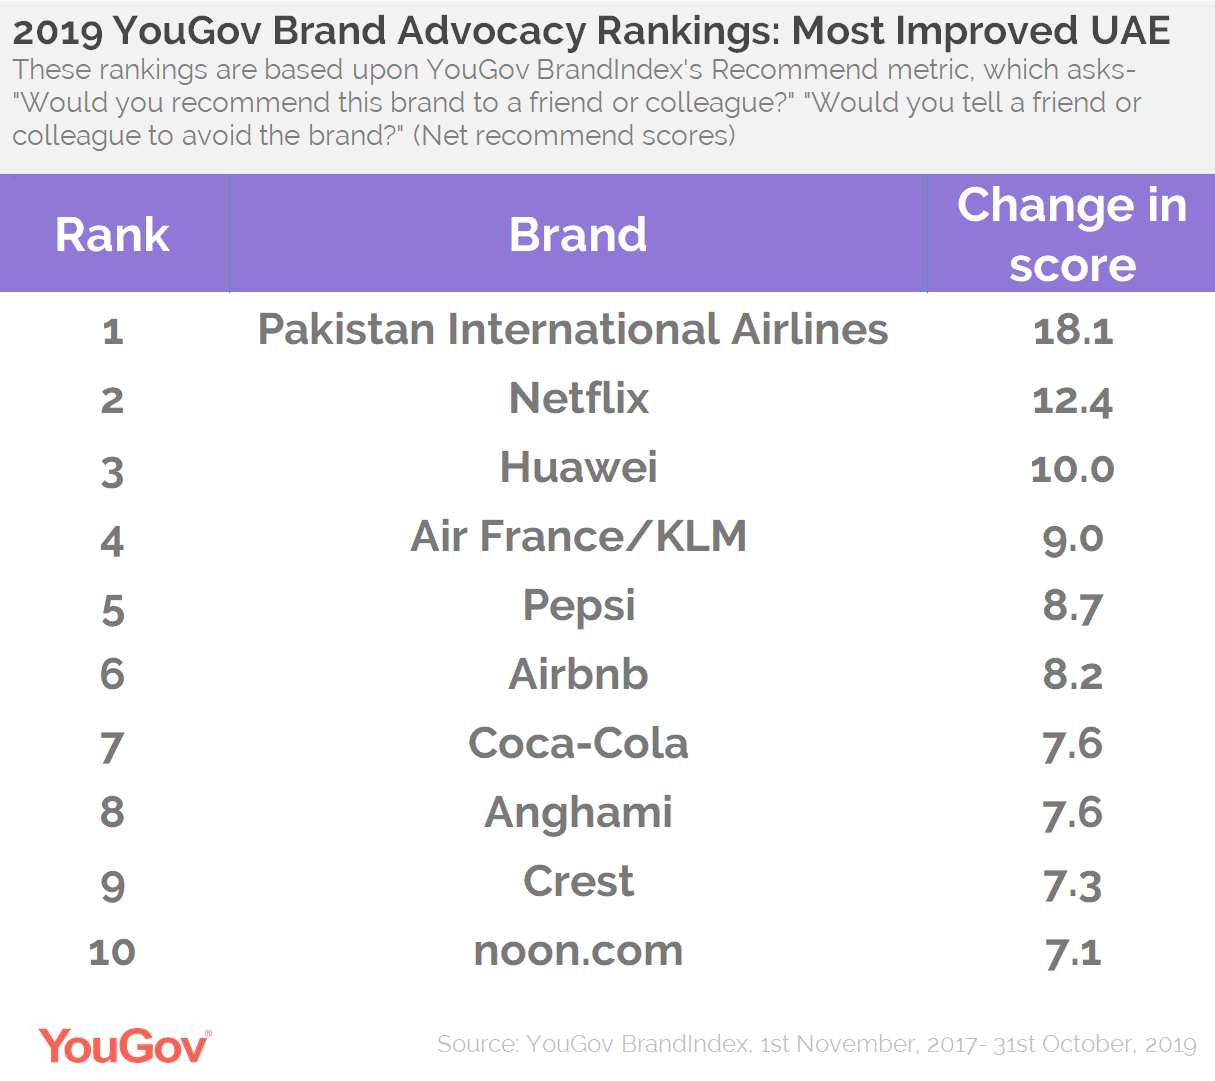 2019 Advocacy Rankings- Top 10 UAE